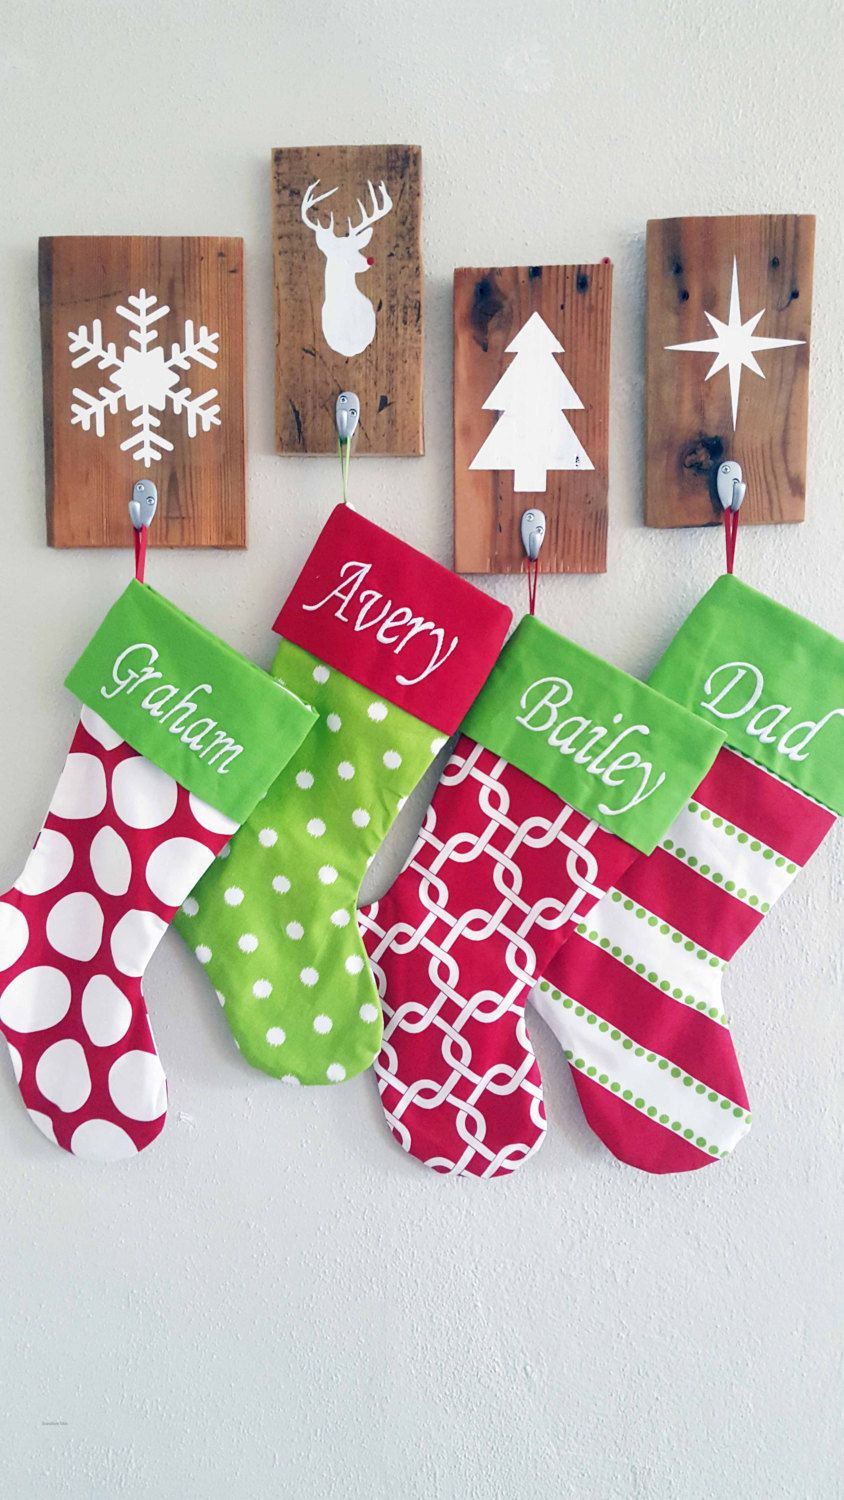 Christmas Stocking Holders Set Of 4 Rustic Christmas Wall Decor Stocking Holder Rustic Christmas Stocking Christmas Stocking Holders Christmas Stockings